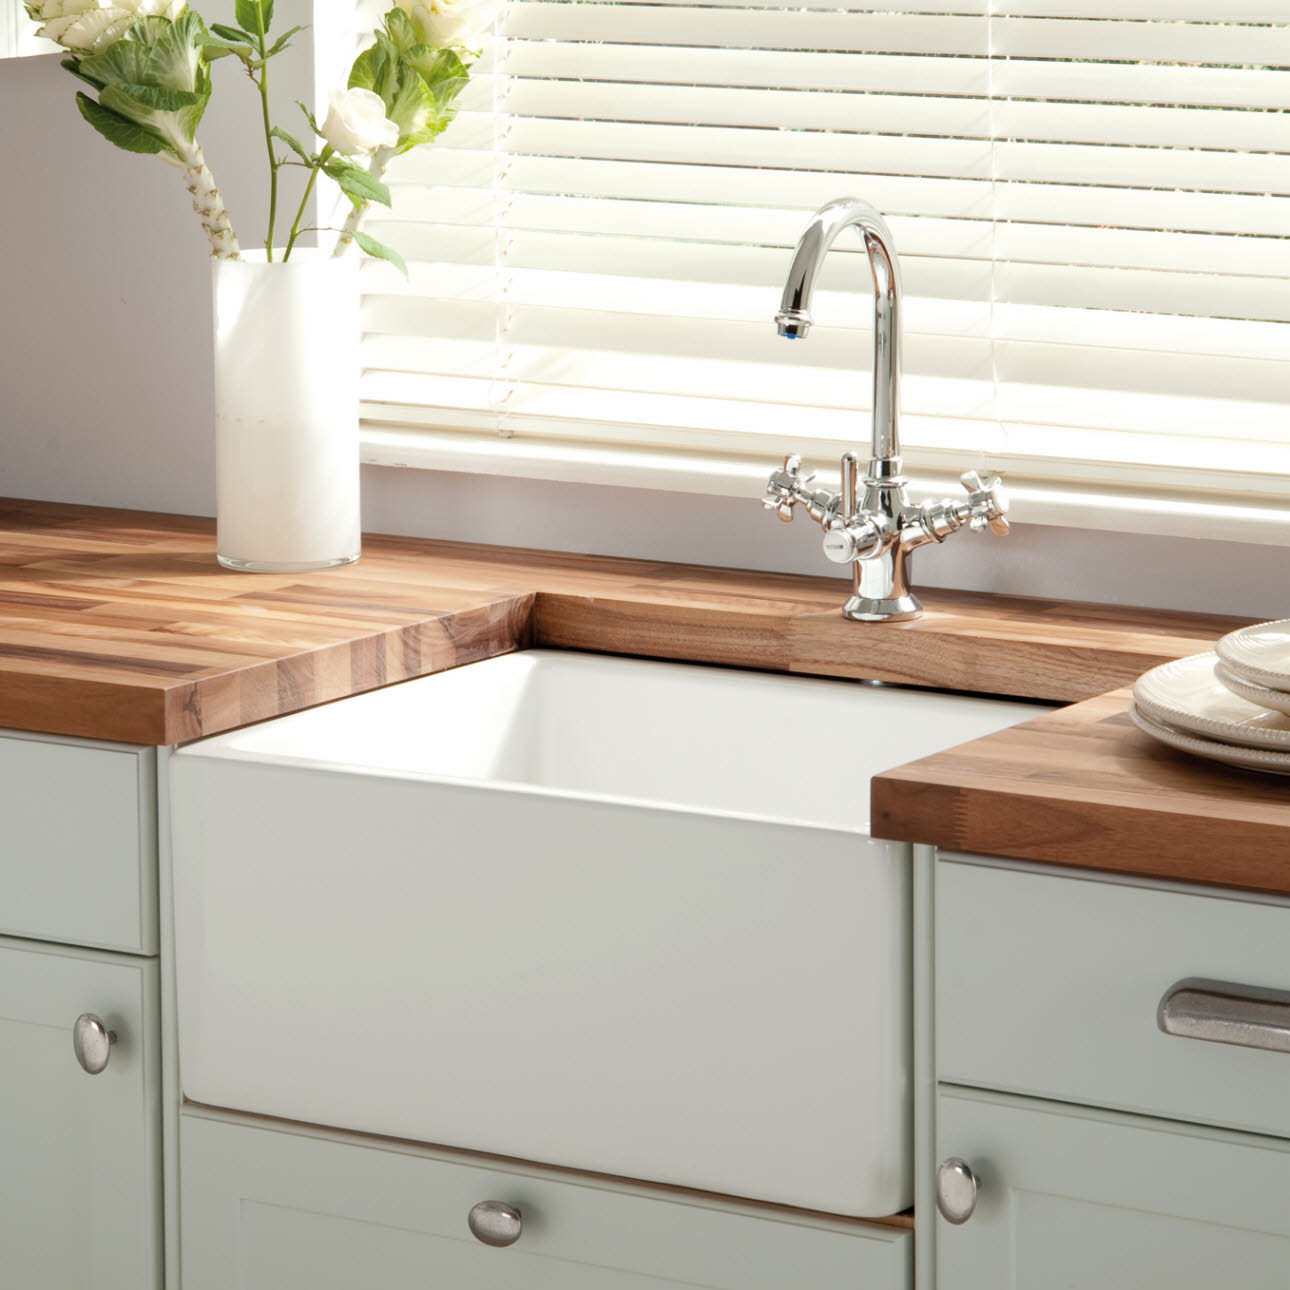 Caple Belfast Sink